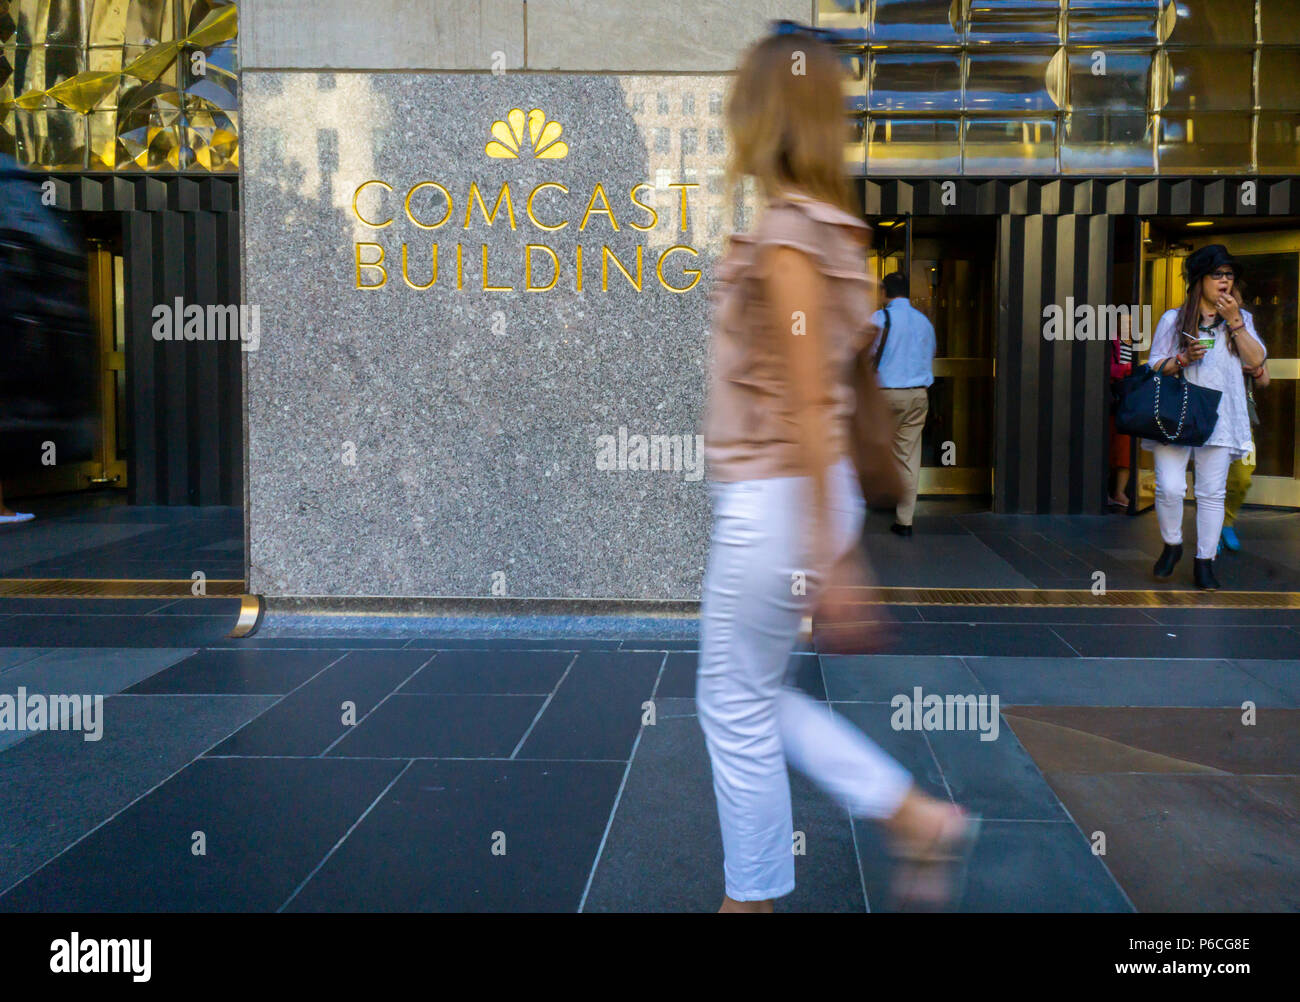 Tourists in Rockefeller Plaza in New York pass the Comcast building on Tuesday, June 19, 2018. Both Comcast and Disney are competing for the purchase of 21st Century Fox. (© Richard B. Levine) - Stock Image